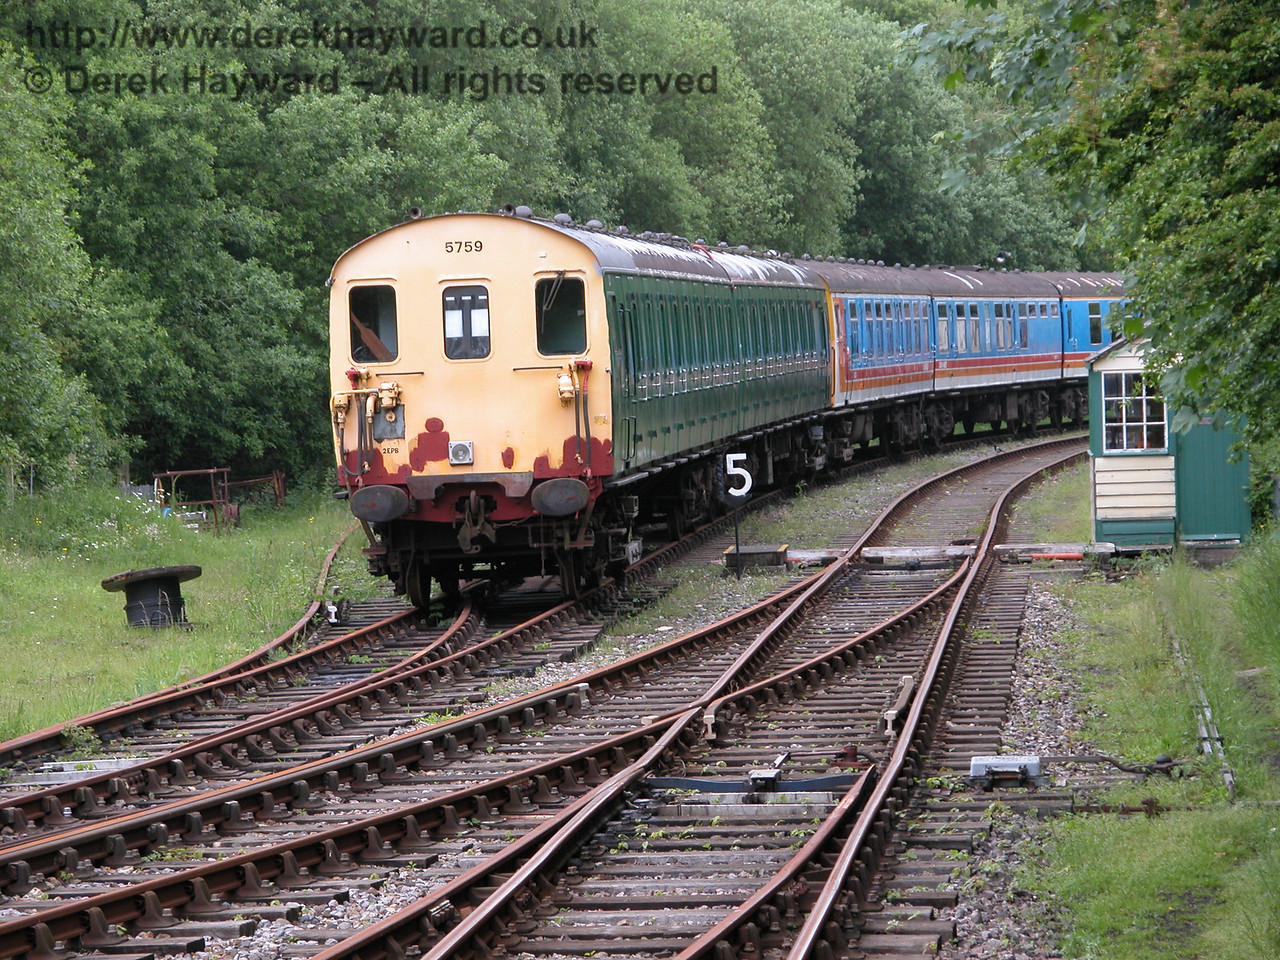 Shepherdswell sidings looking east in 2005. 2-EPB 5759 and 4-CEP 7105 (including a Buffet Car from 7014) are in shot. 06.06.2005